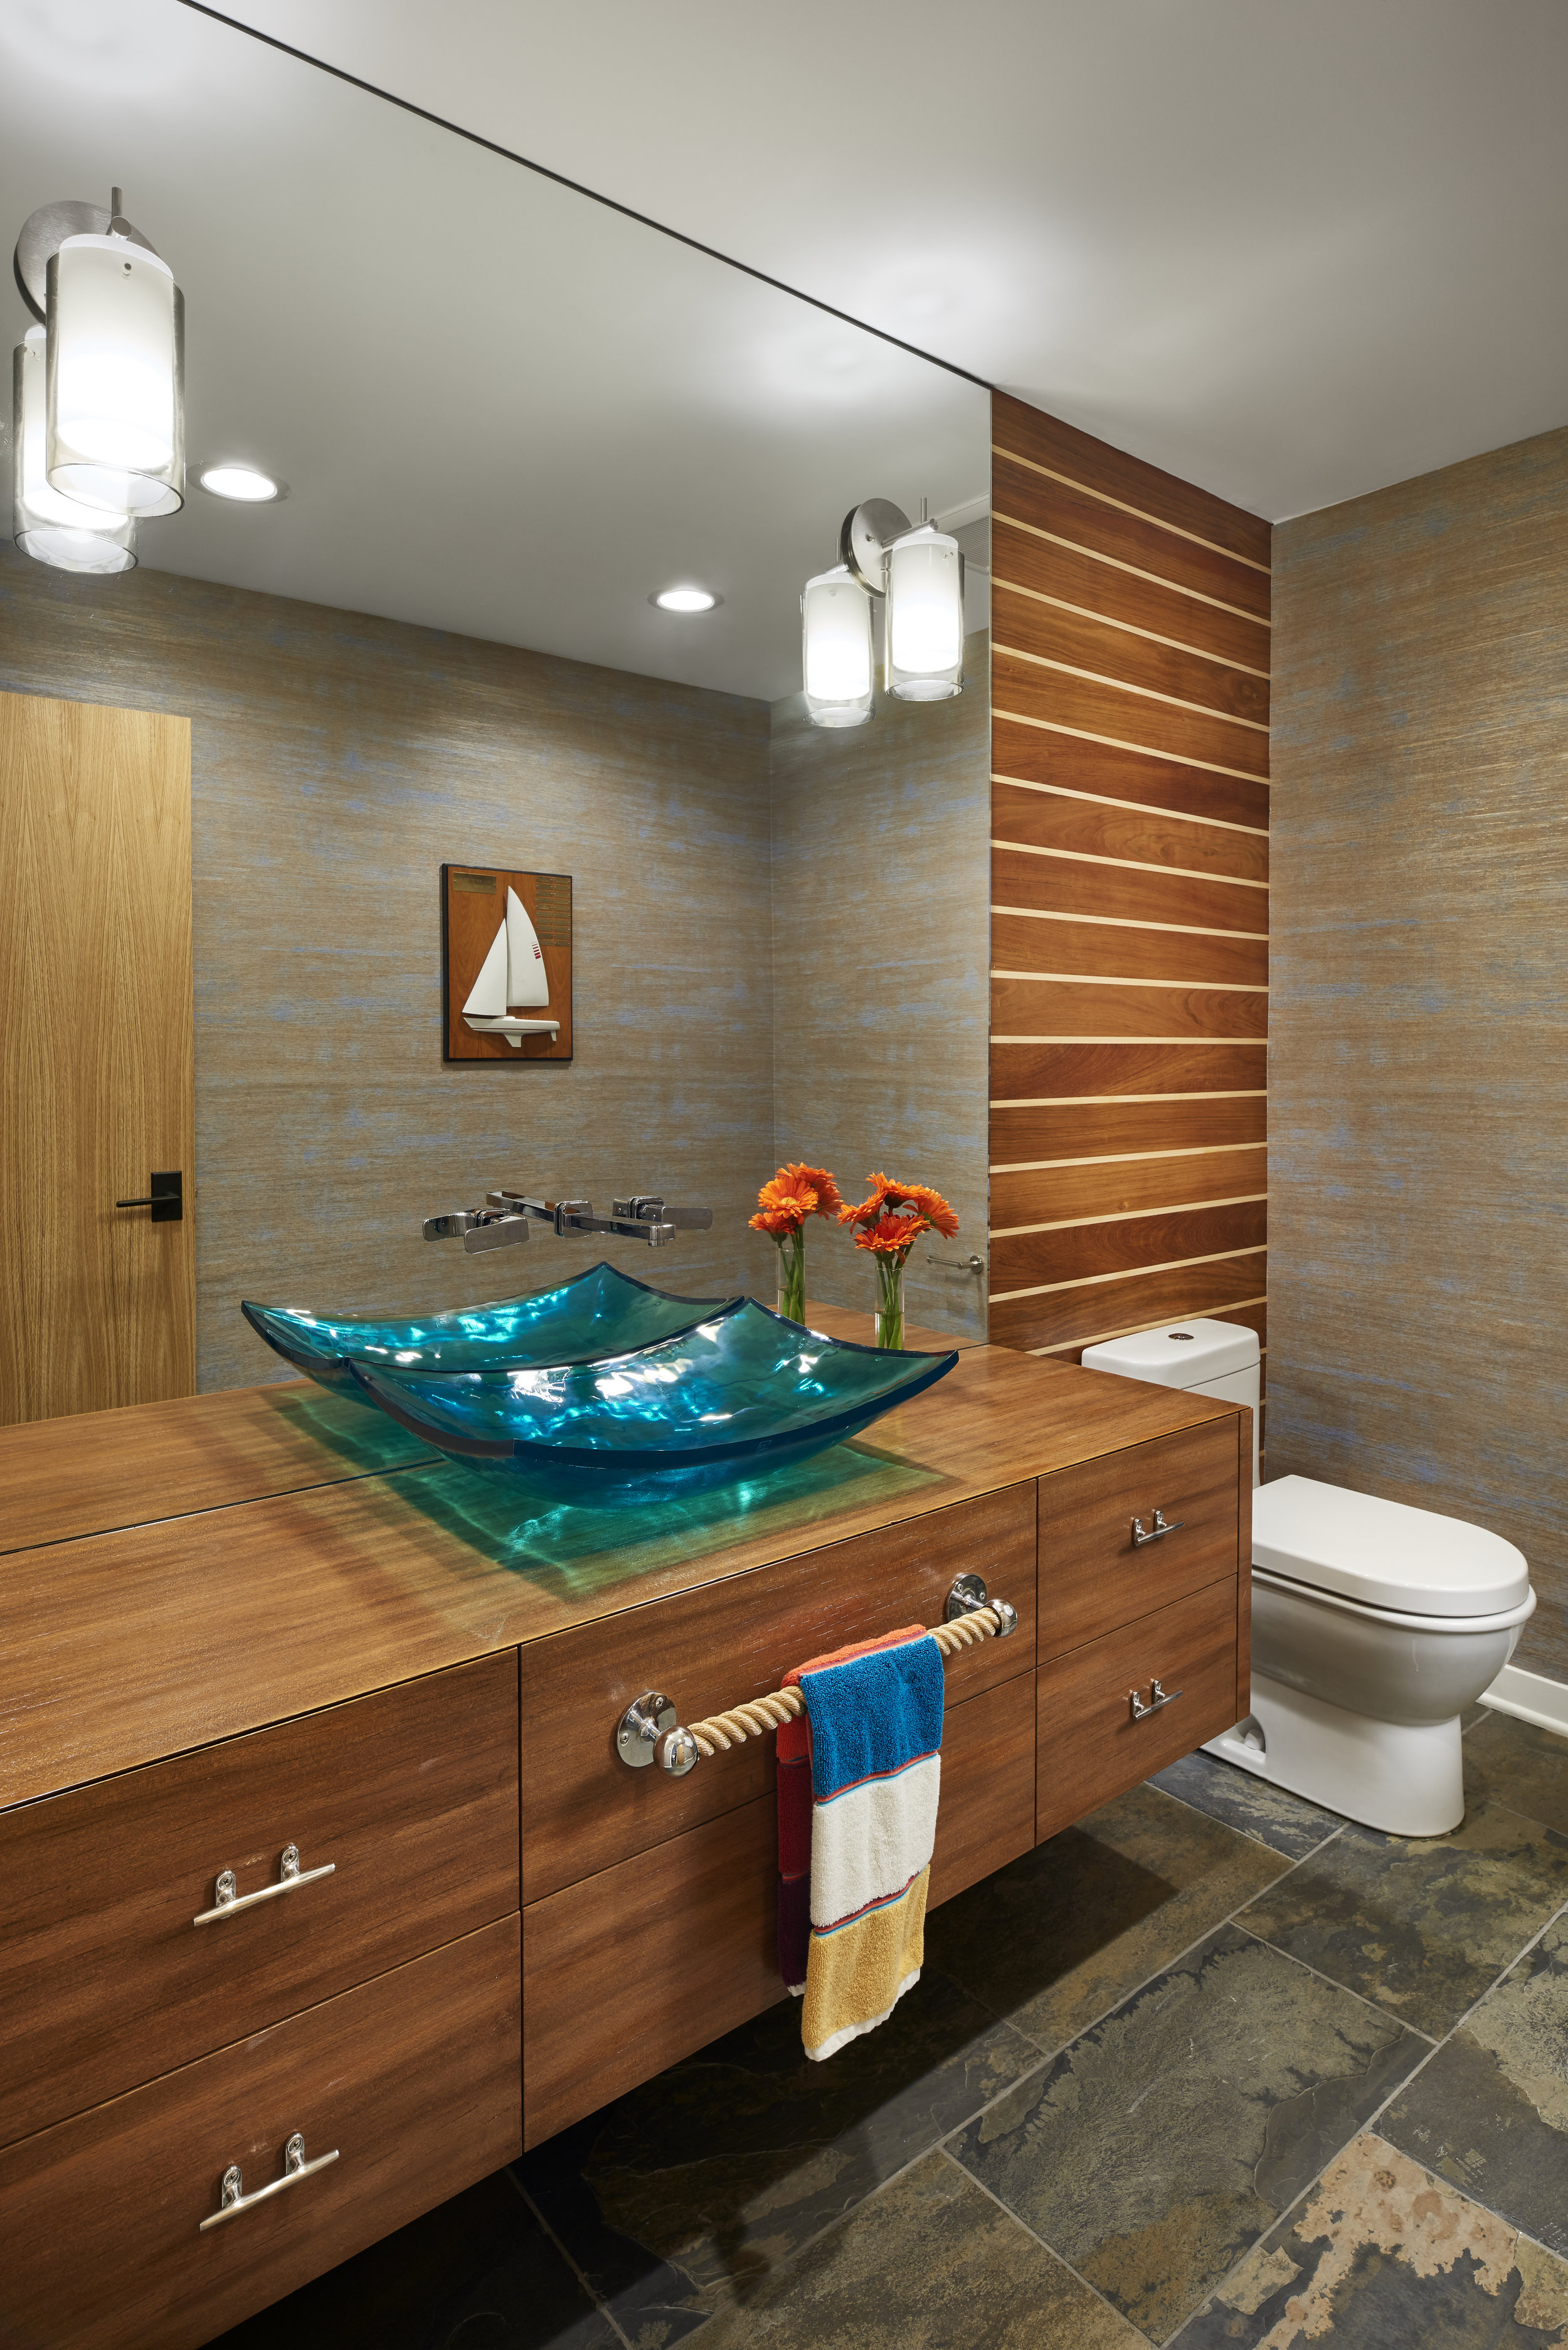 Nautical inspired bathroom, designed by NewStudio Architecture